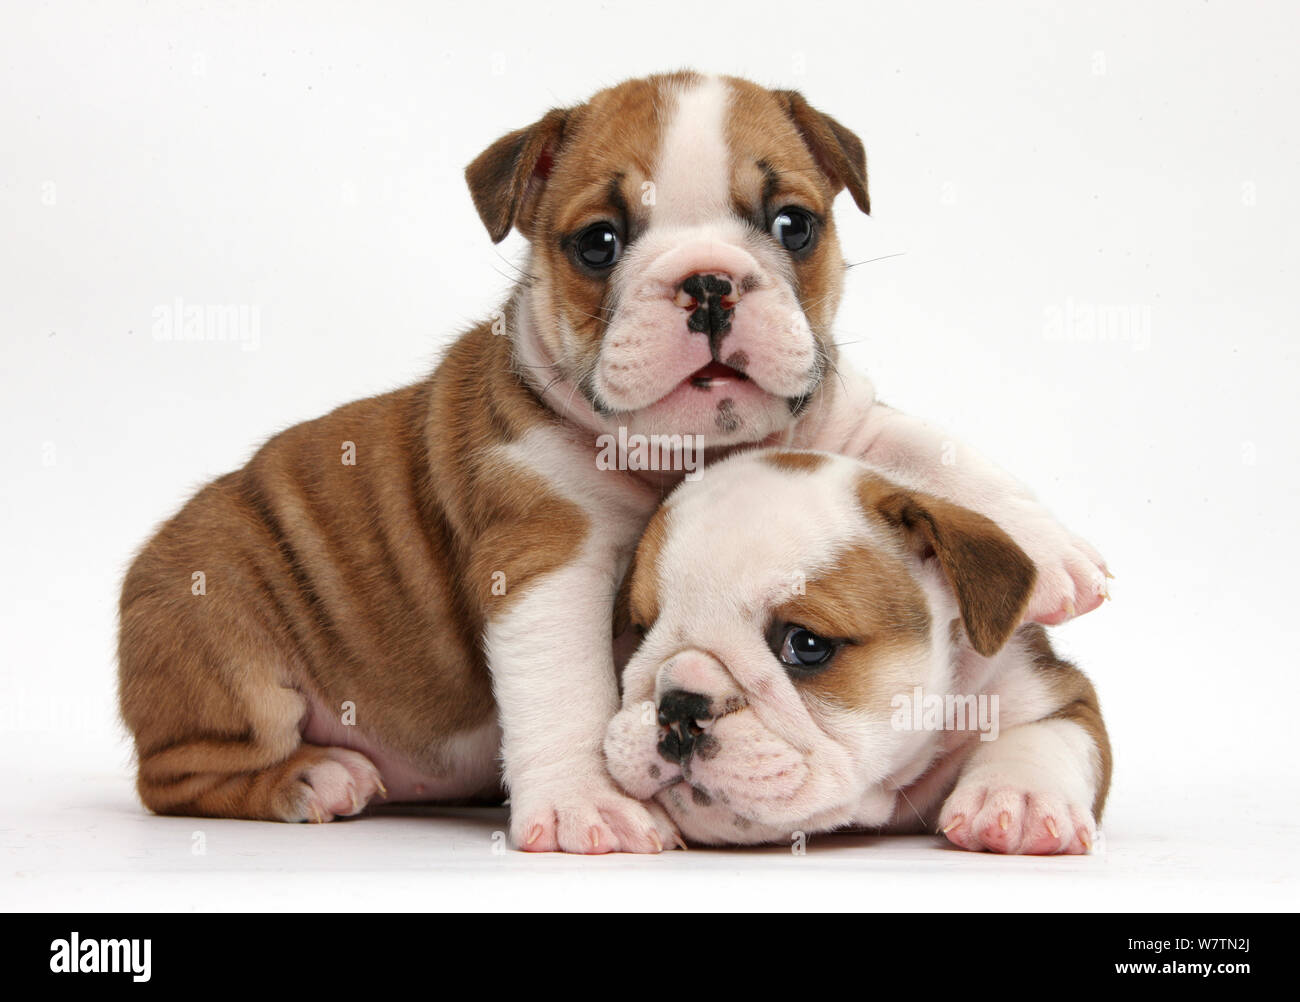 Two Cute Bulldog Pups 5 Weeks Against White Background Stock Photo Alamy